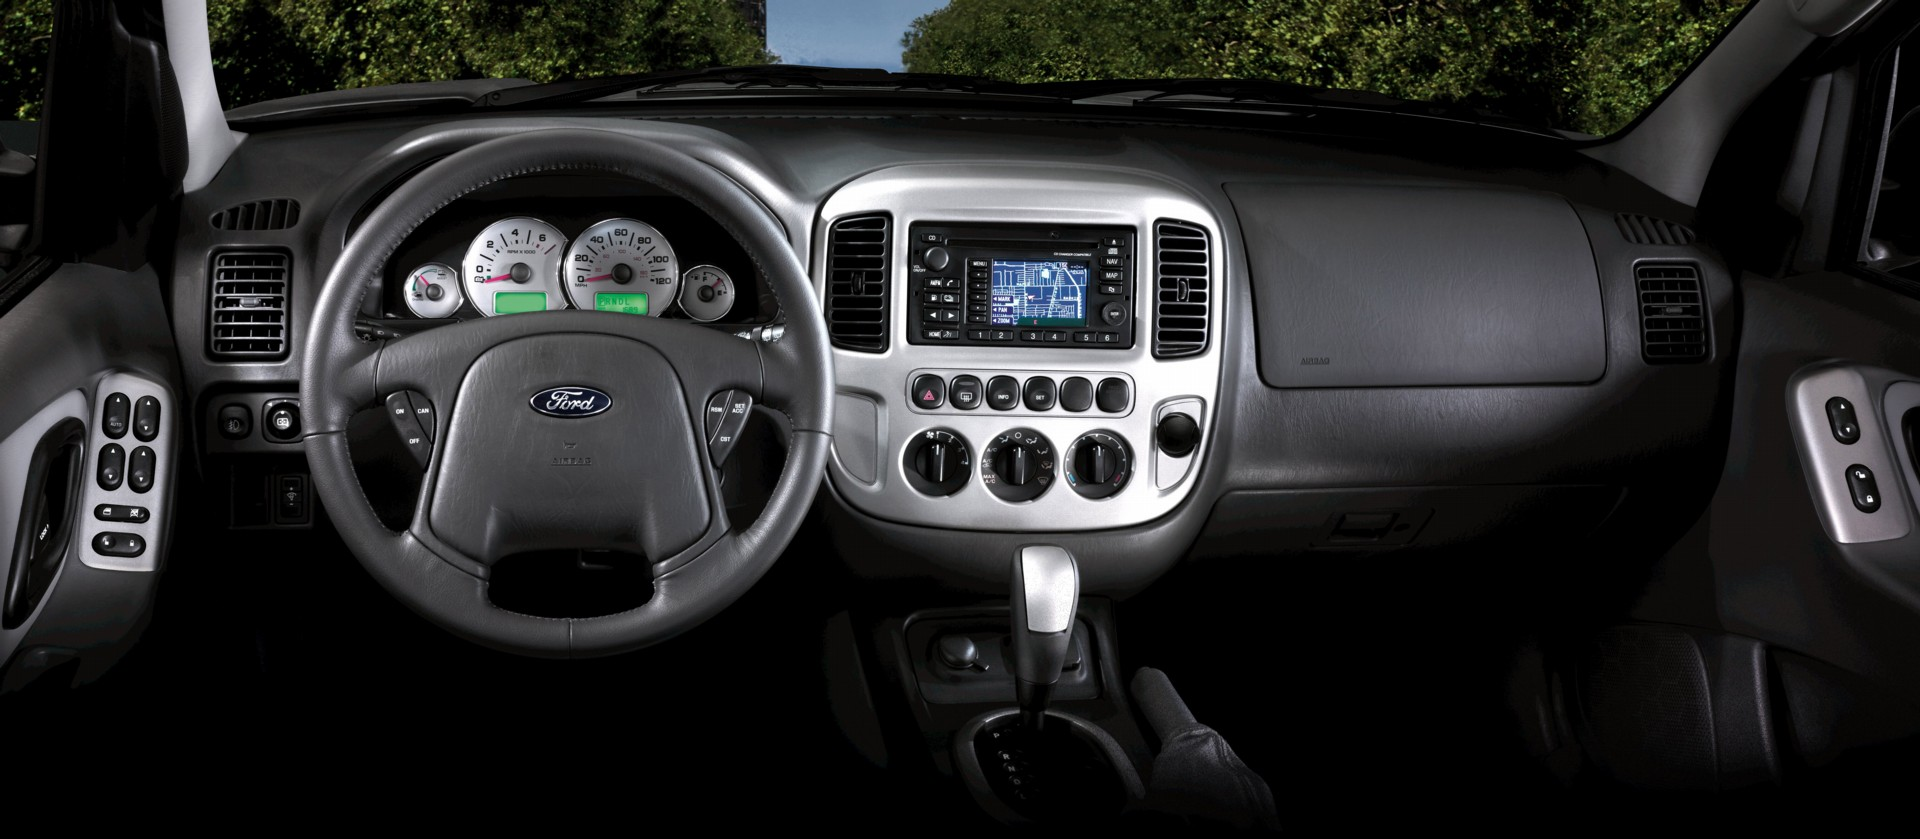 Ford Escape Hybrid 2007 #6